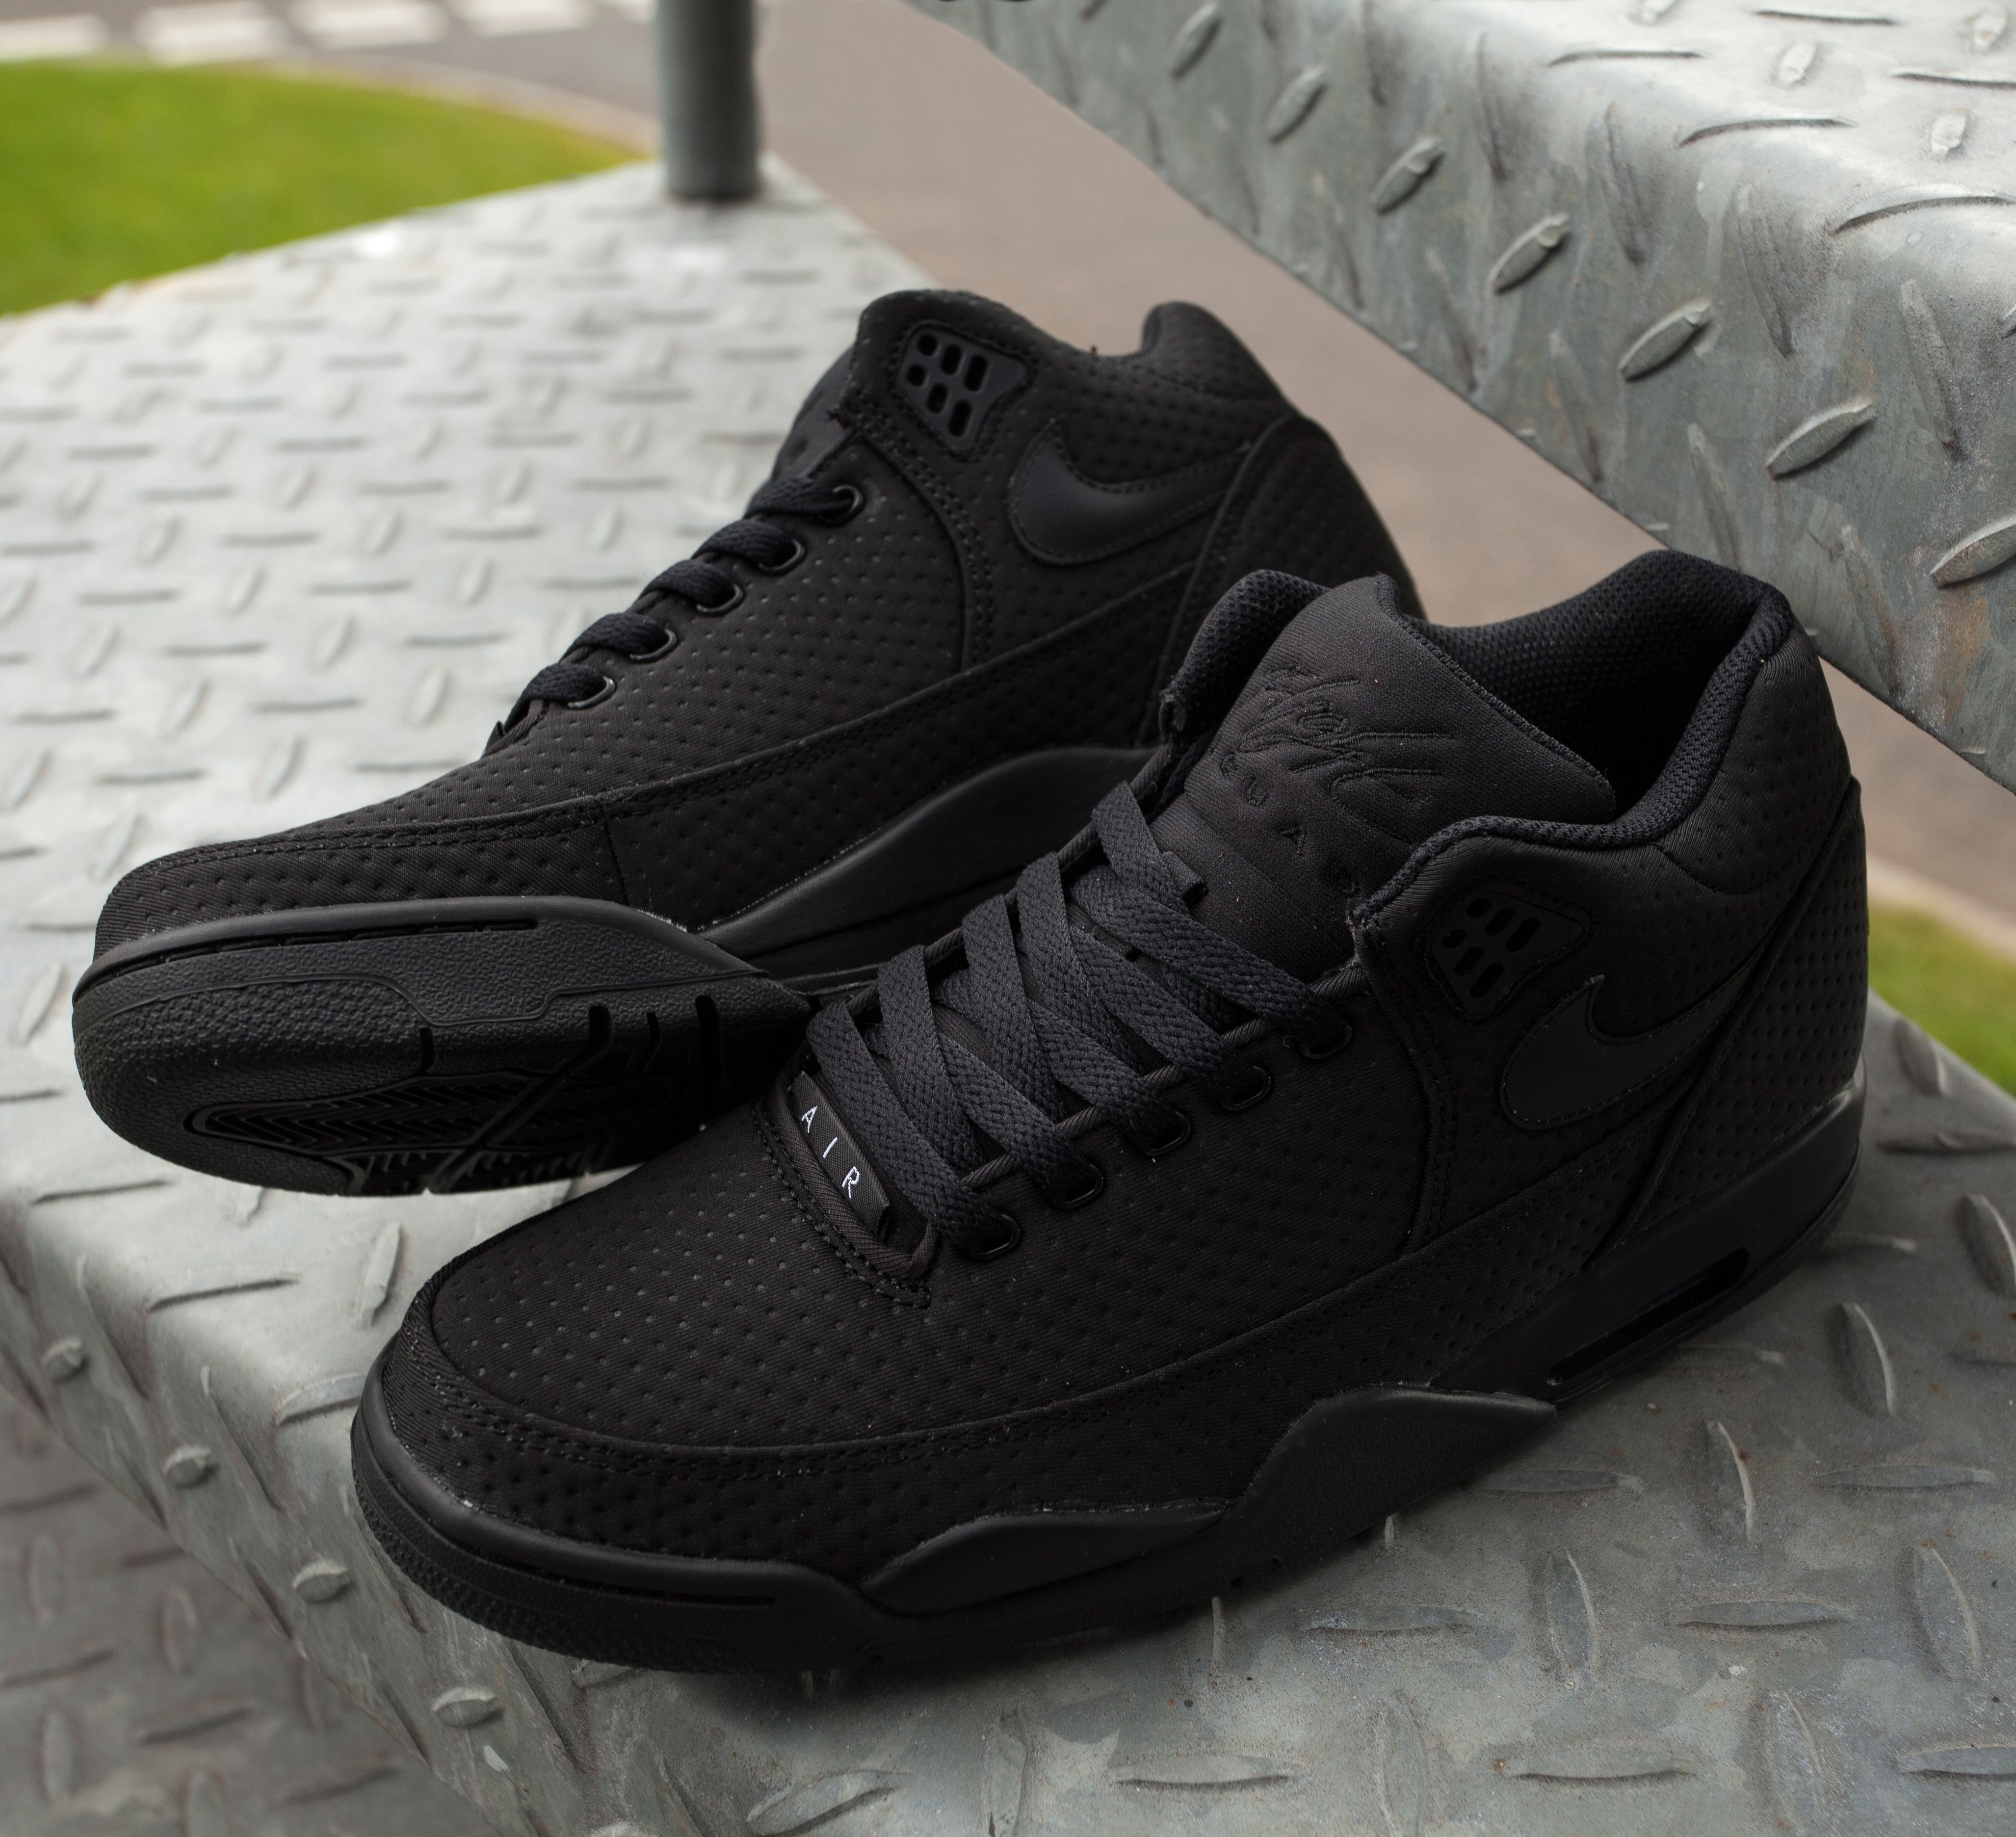 f294159cf6f All black errythang. Introducing  the Nike Flight Squad trainer ...